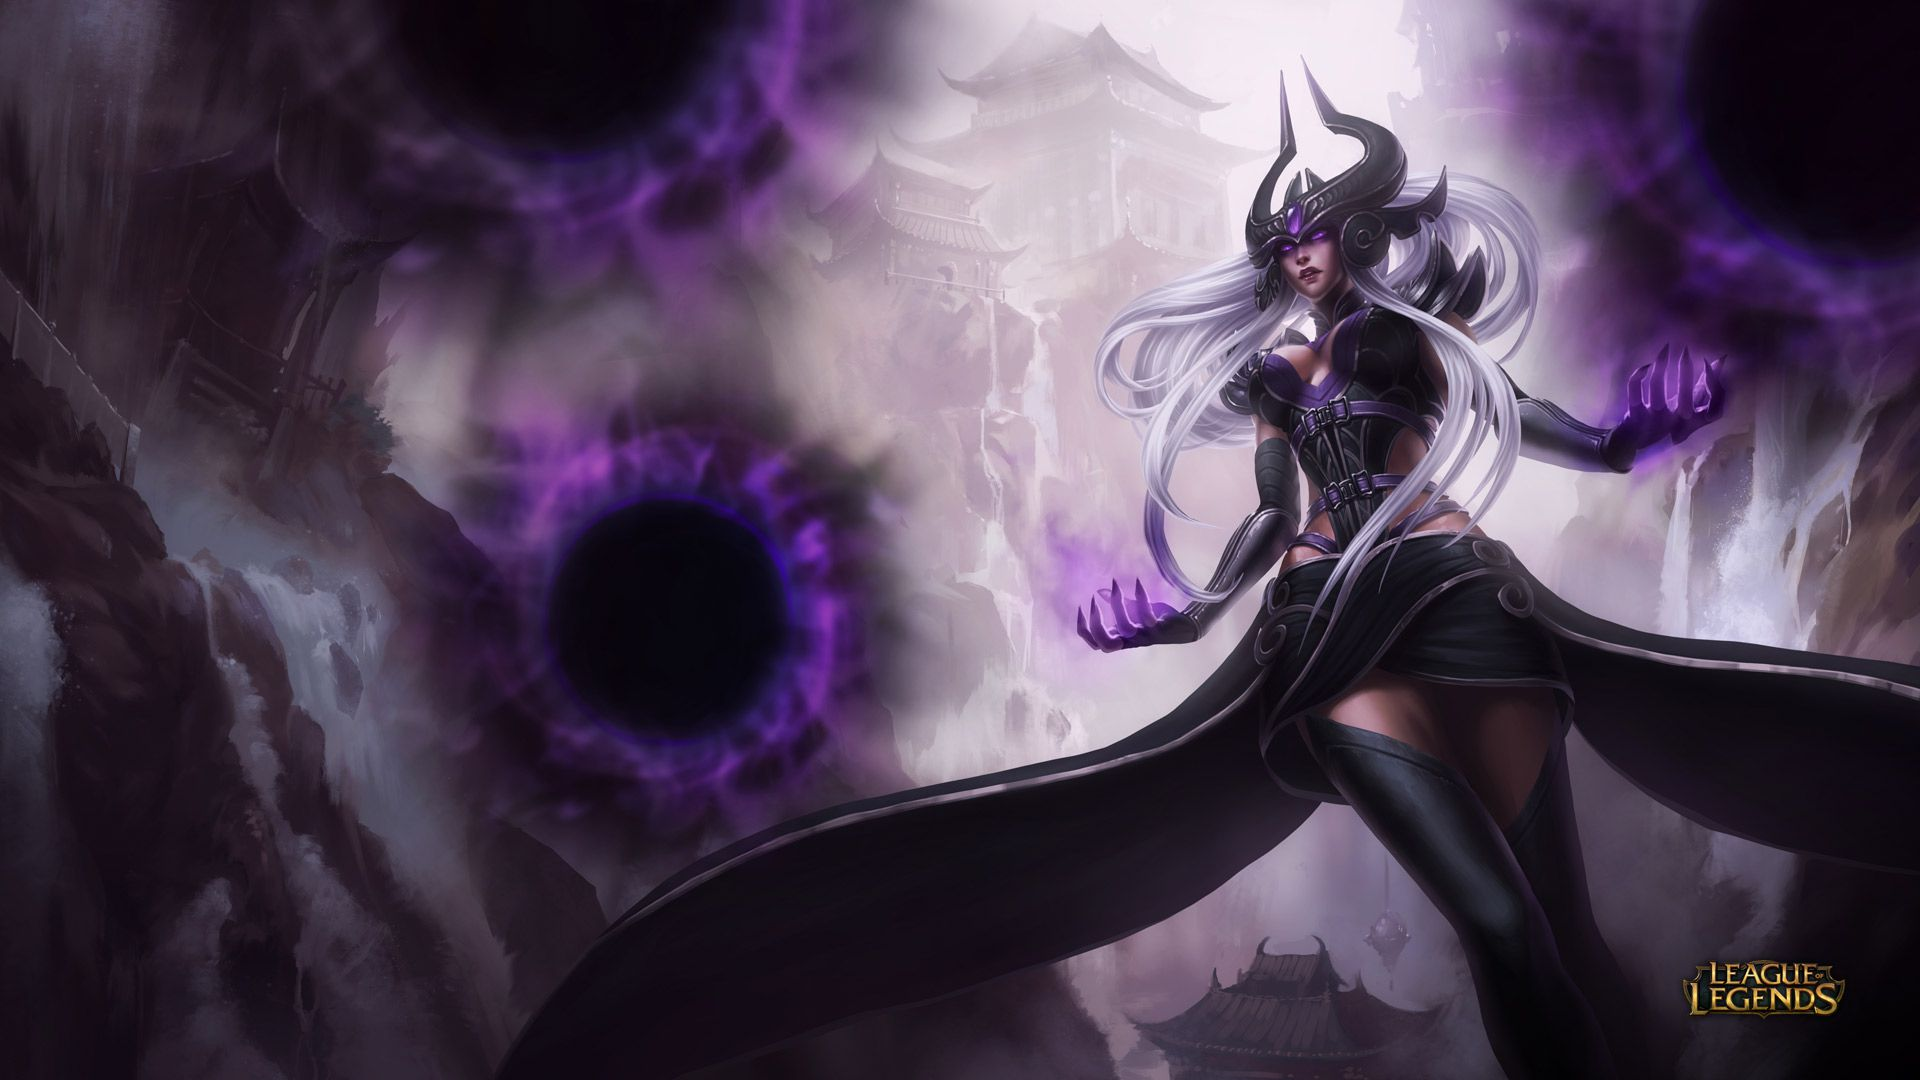 Syndara - League of Legends Wallpapers